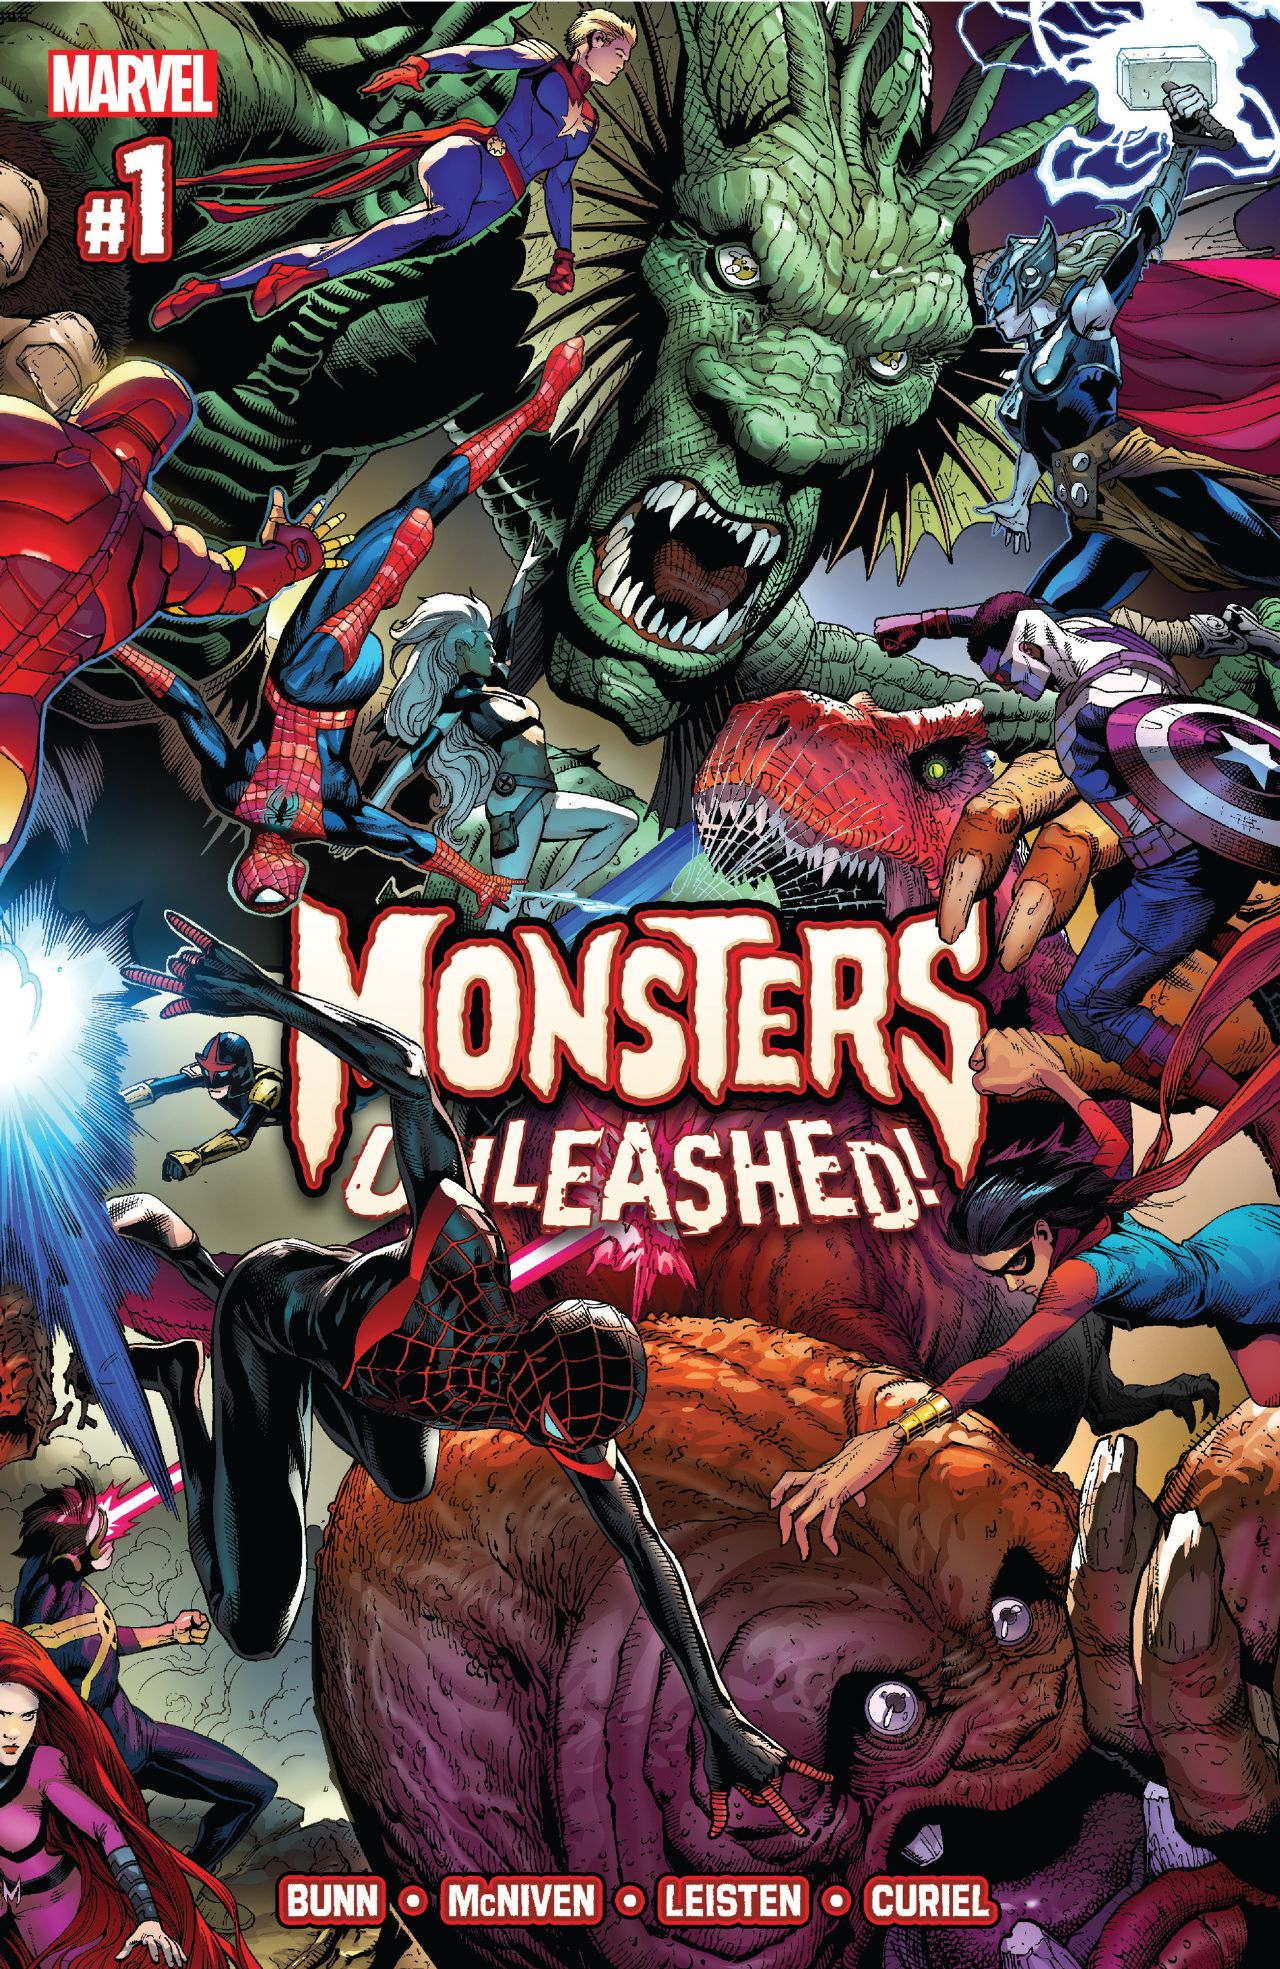 Monsters Unleashed, the newest event from MARVEL COMICS!